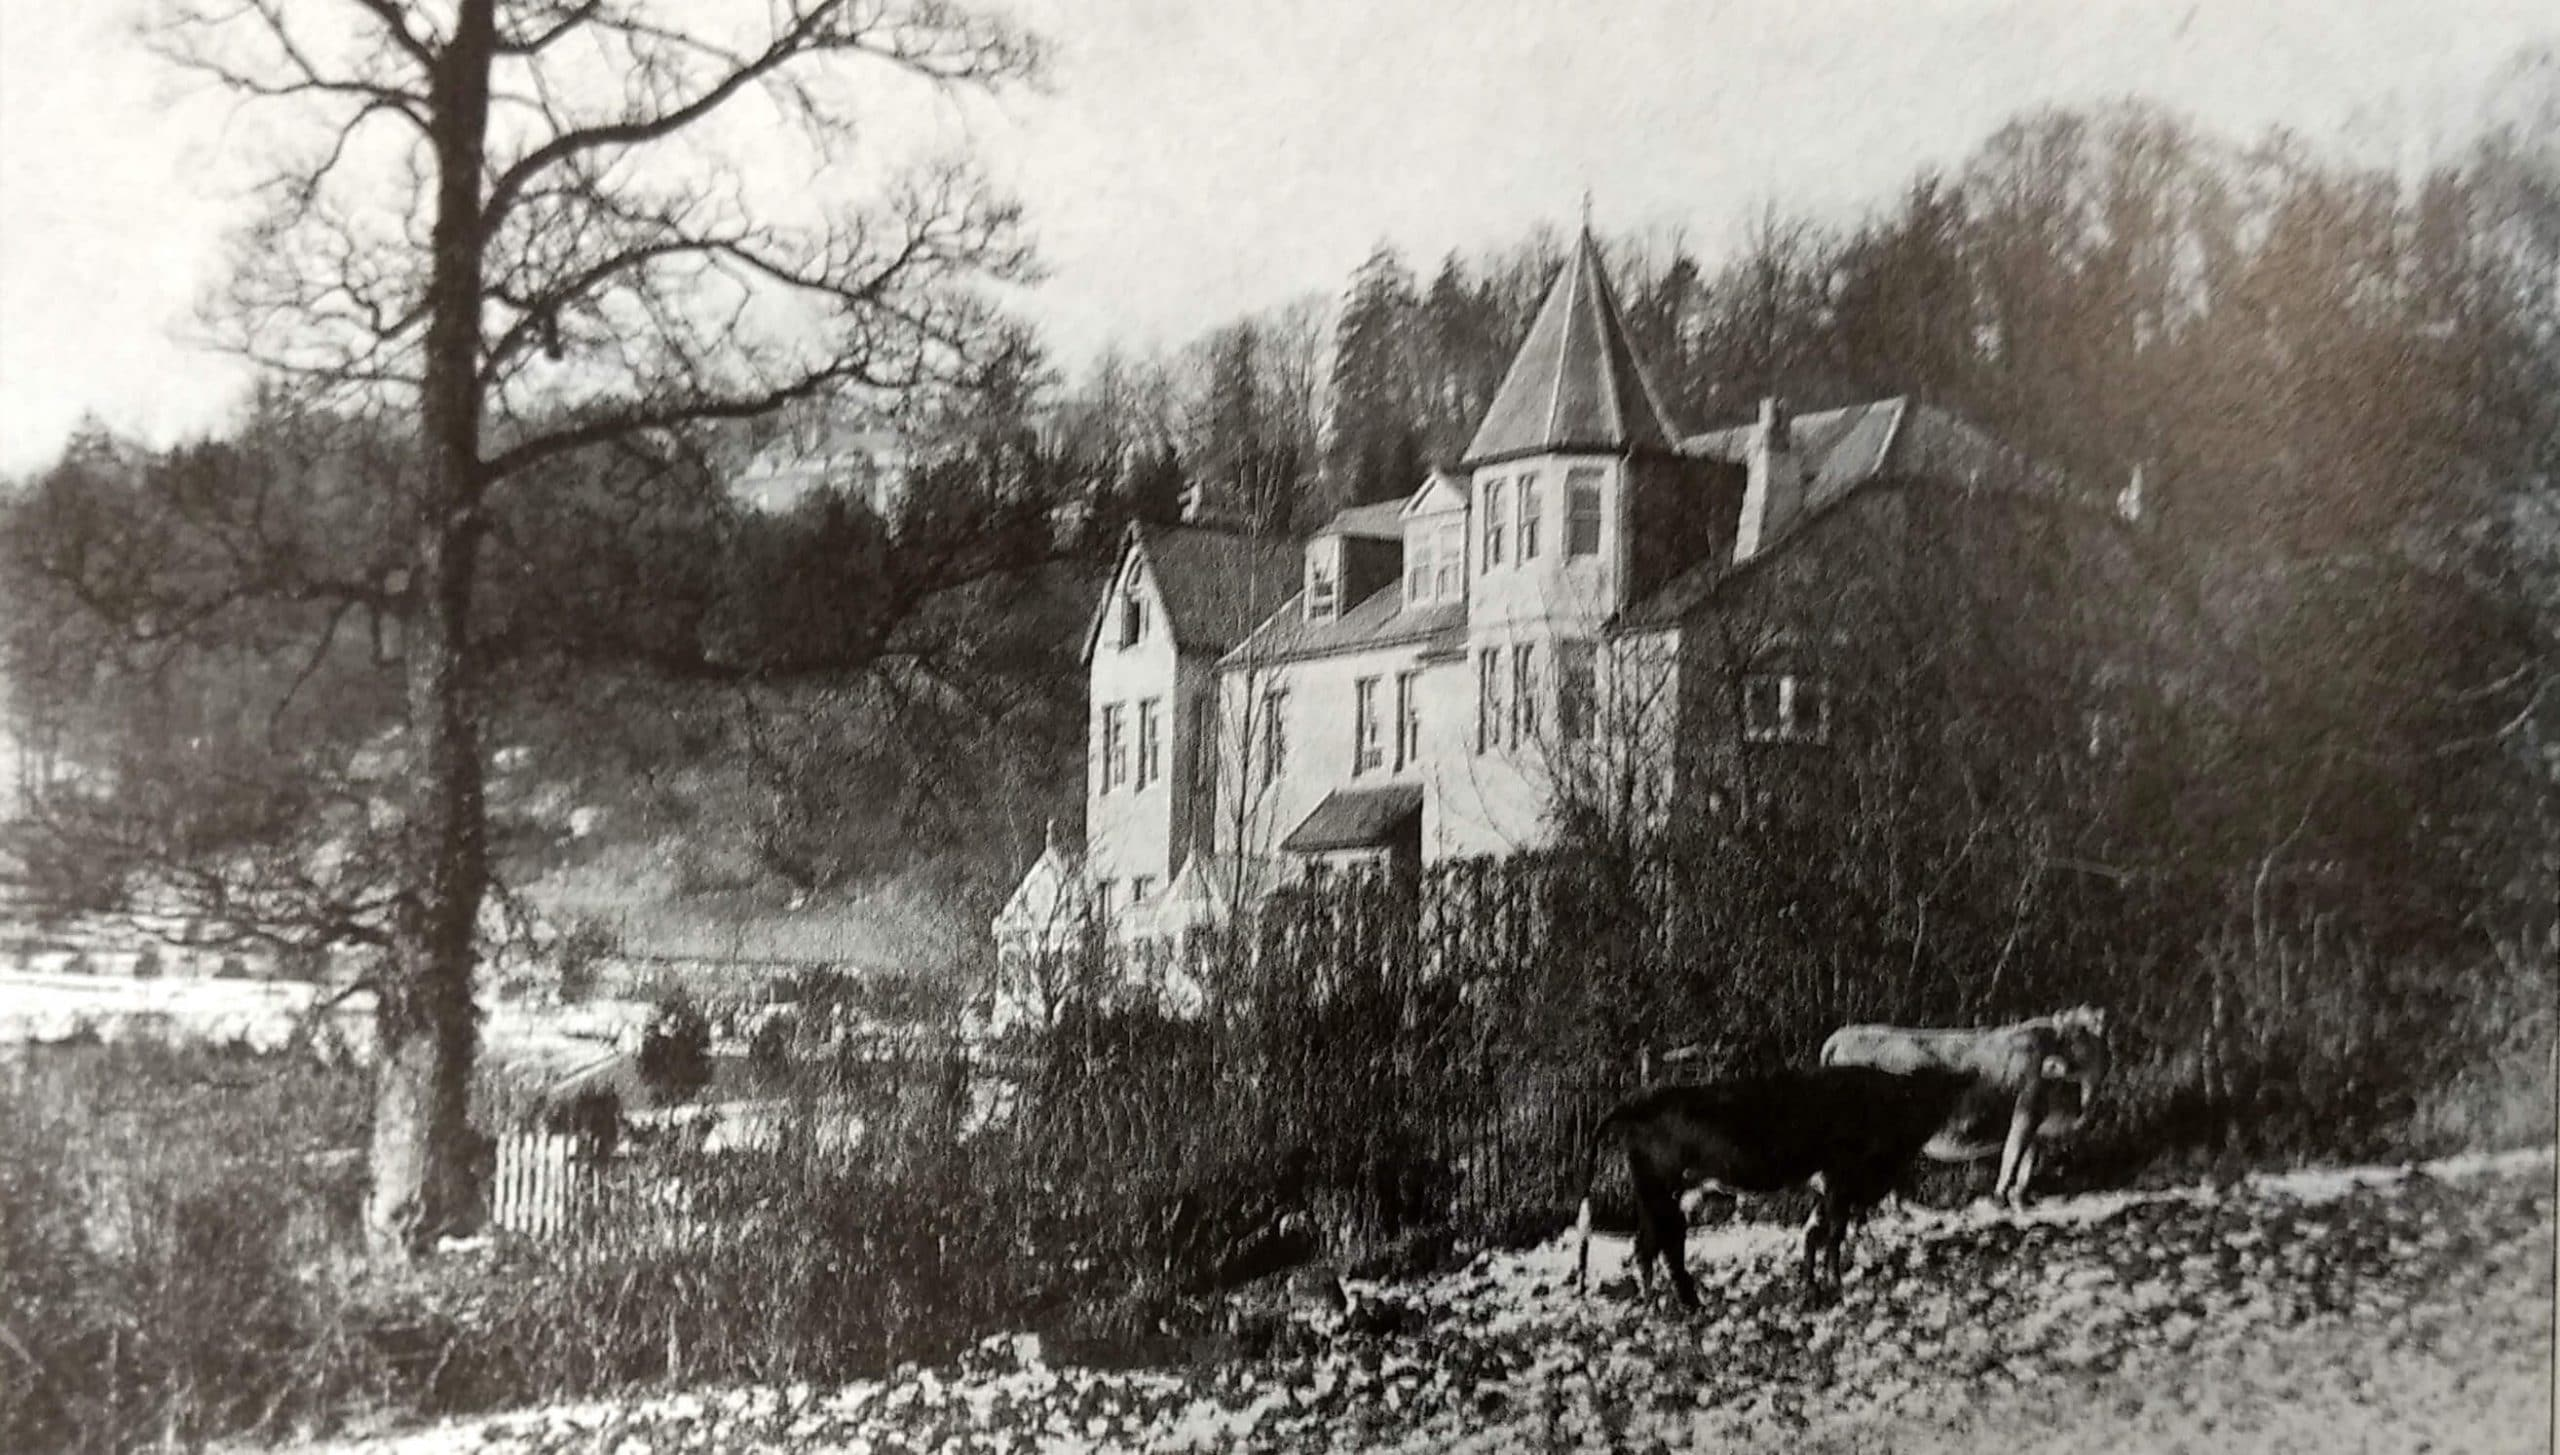 Bushey House, Monkton Combe about 1905